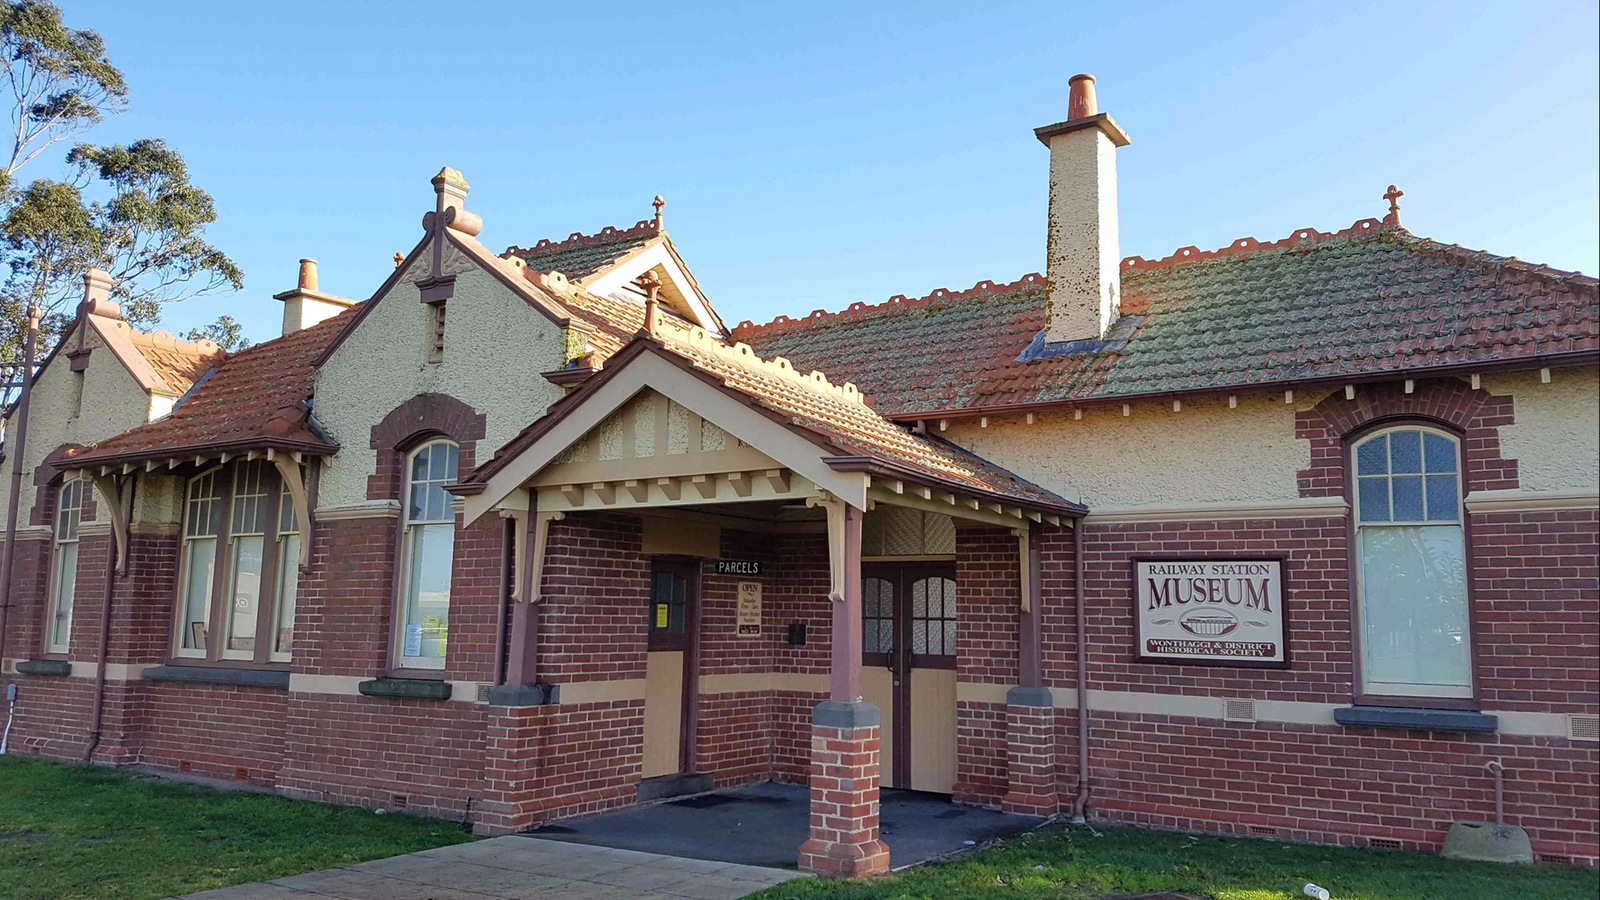 Wonthaggi Railway Station was very busy in its day and is now home to a museum